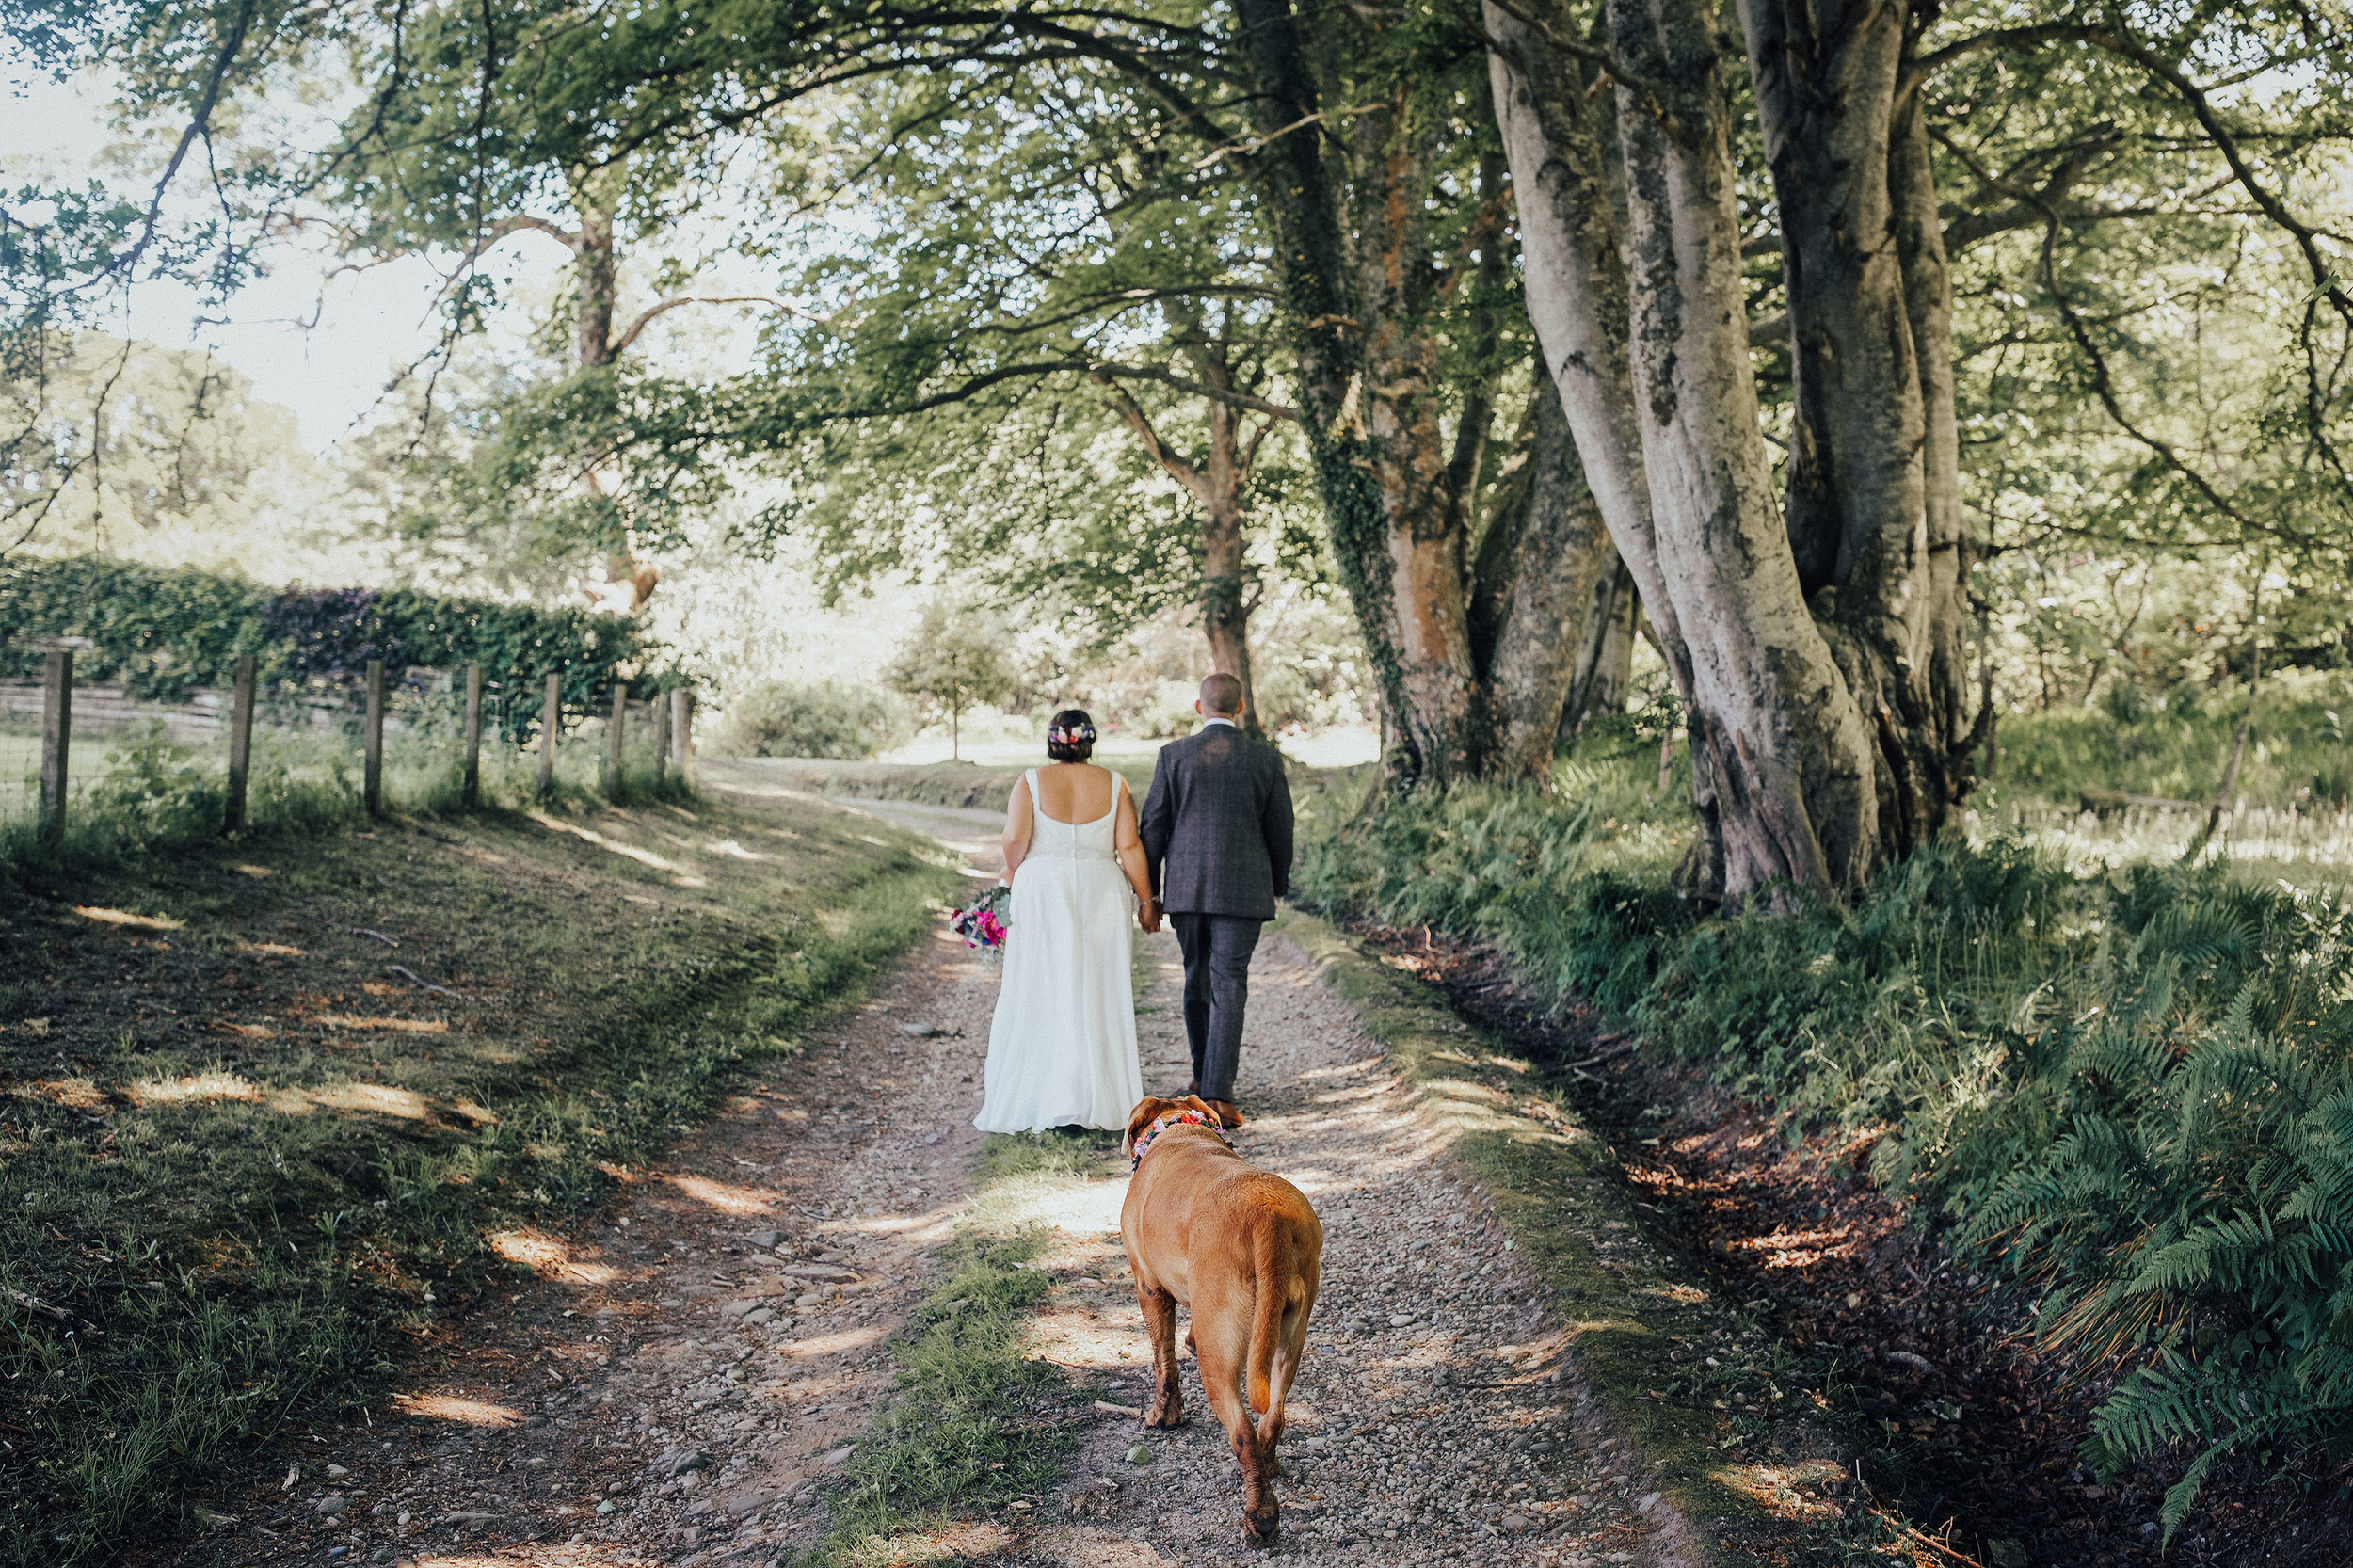 SCOTTISH_ELOPEMENT_PHOTOGRAPHER_PJ_PHILLIPS_PHOTOGRAPHY_94.jpg